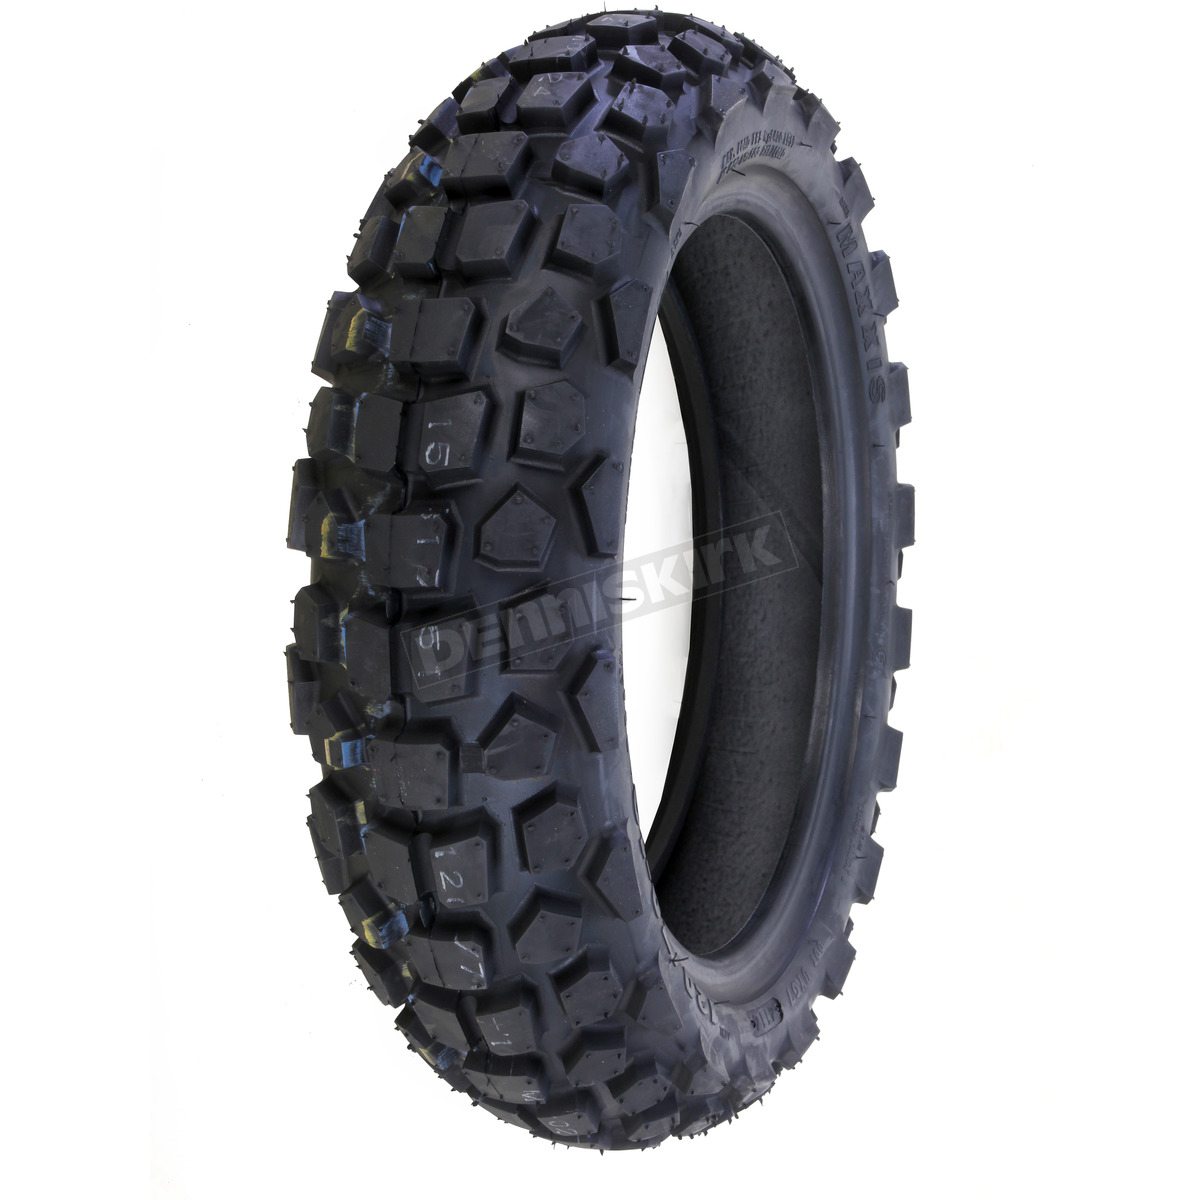 maxxis front or rear m6024 120 70 12 blackwall tire. Black Bedroom Furniture Sets. Home Design Ideas